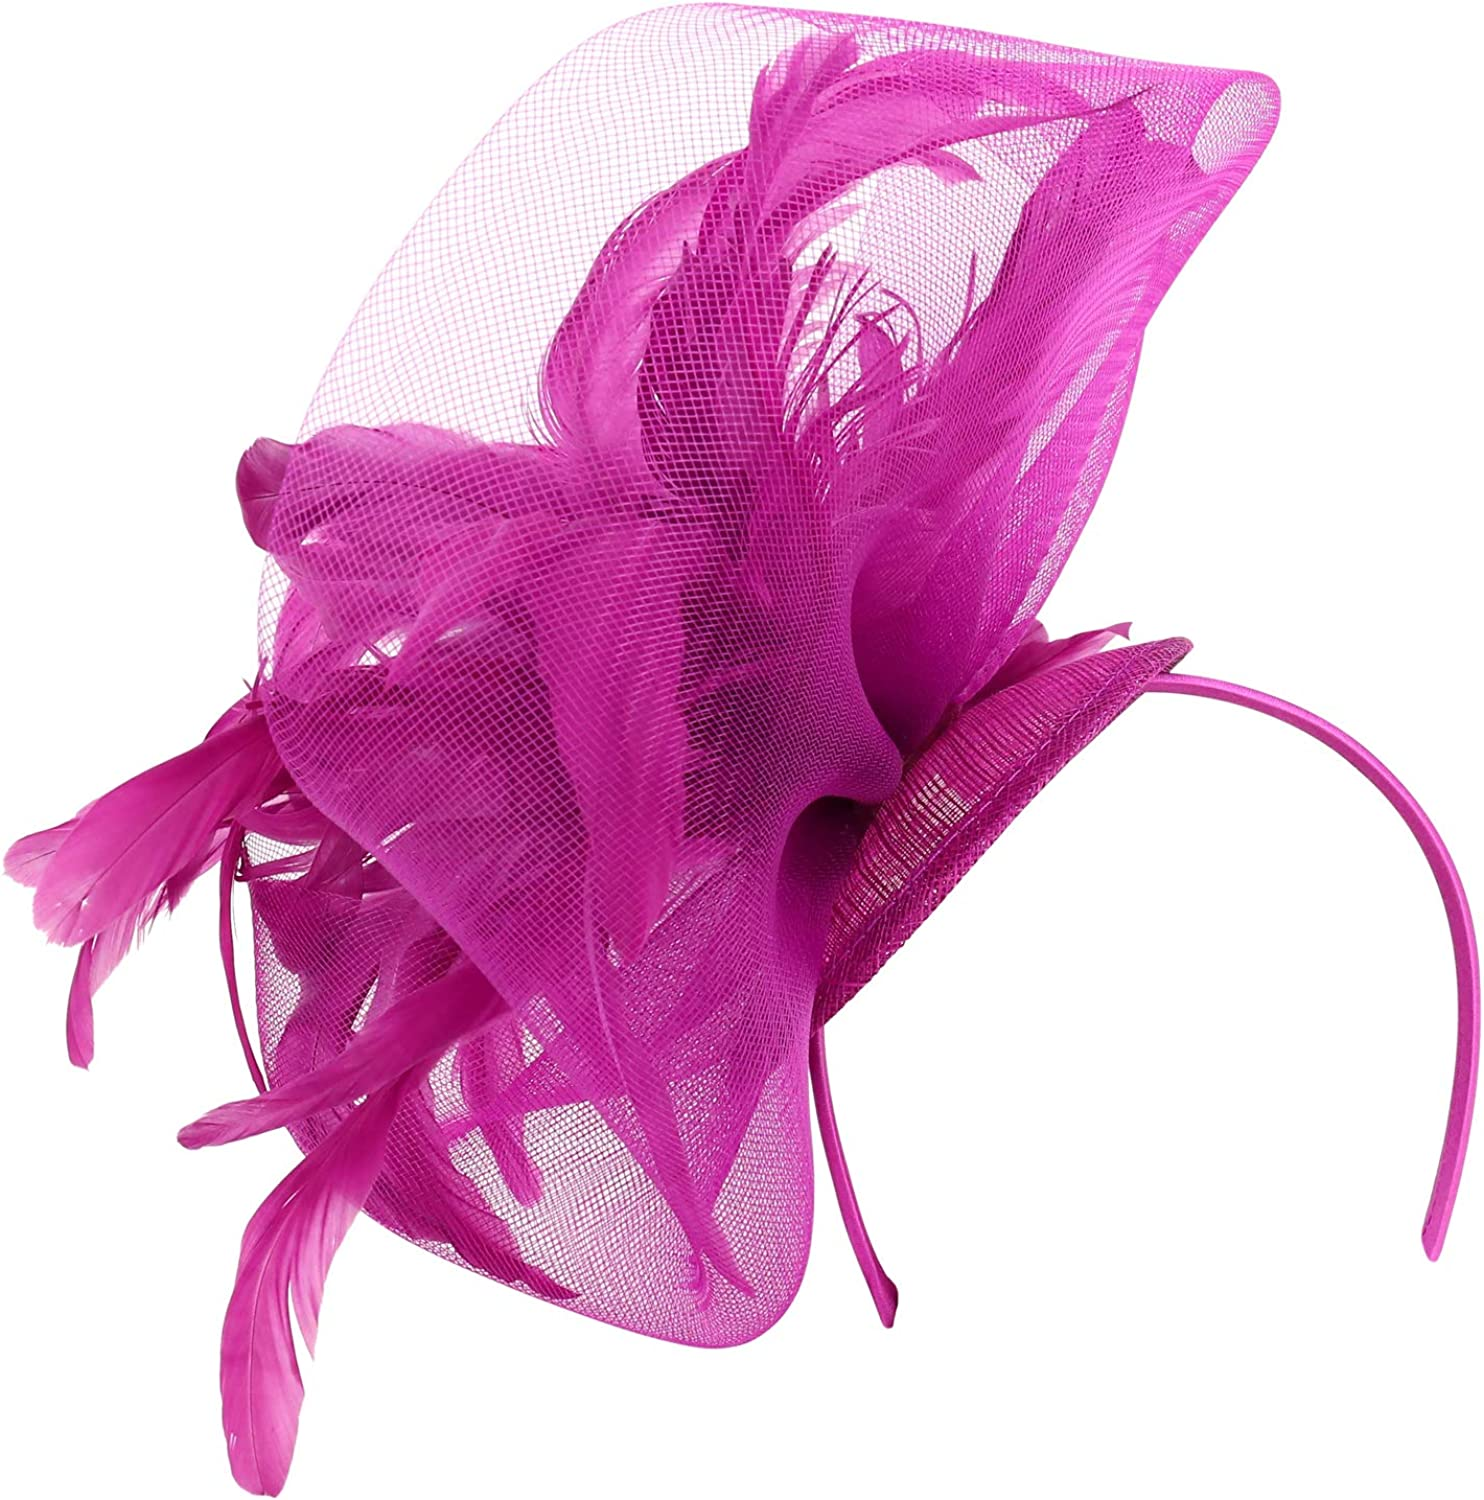 Trendy Apparel Shop OFFicial store Feathers Mesh Party Net Fas Cocktail Sinamay Time sale